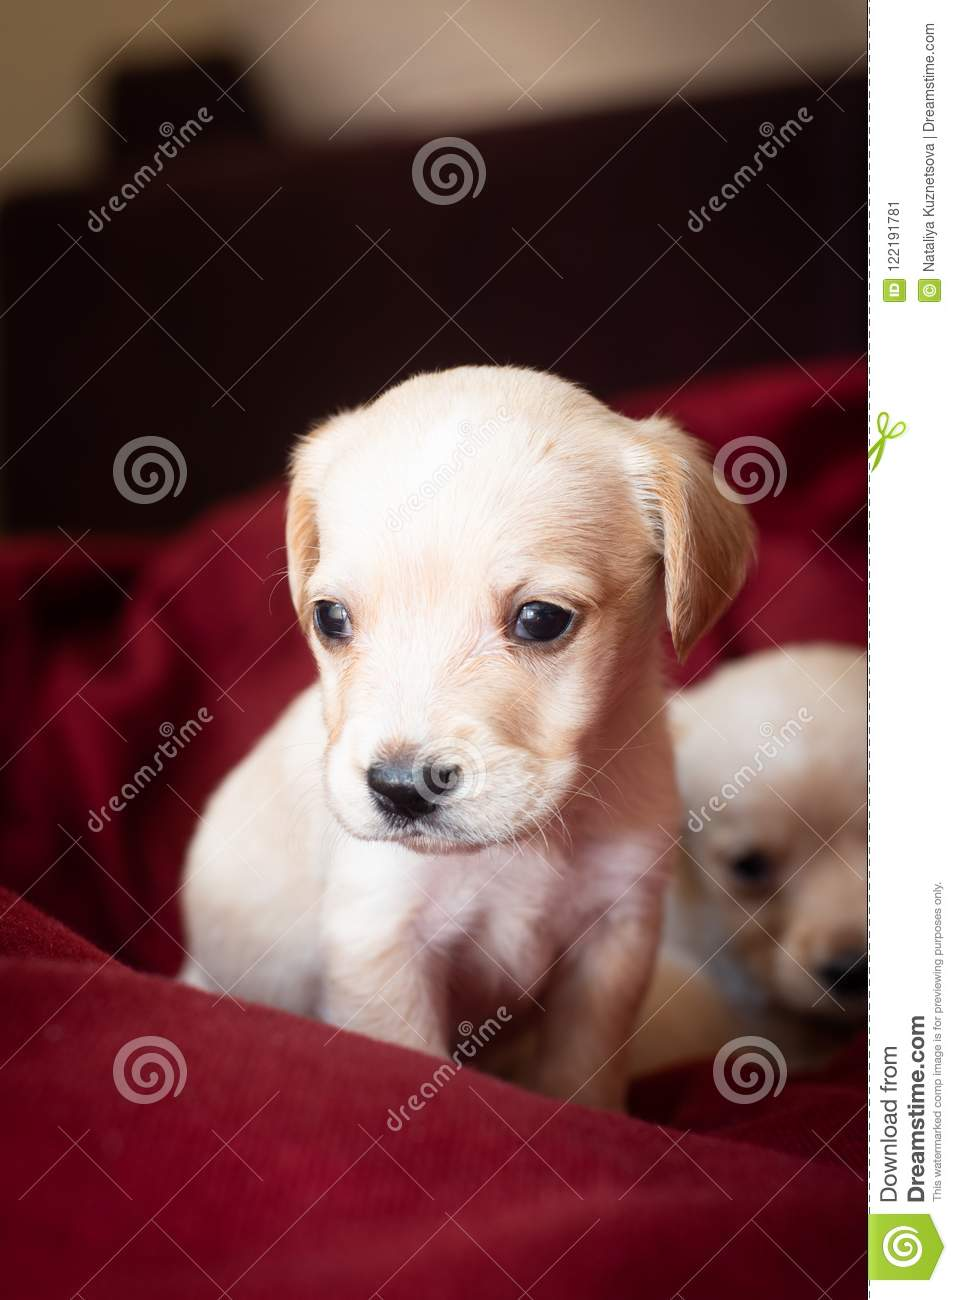 Cute Little Puppies Stock Image Image Of Small Portrait 122191781